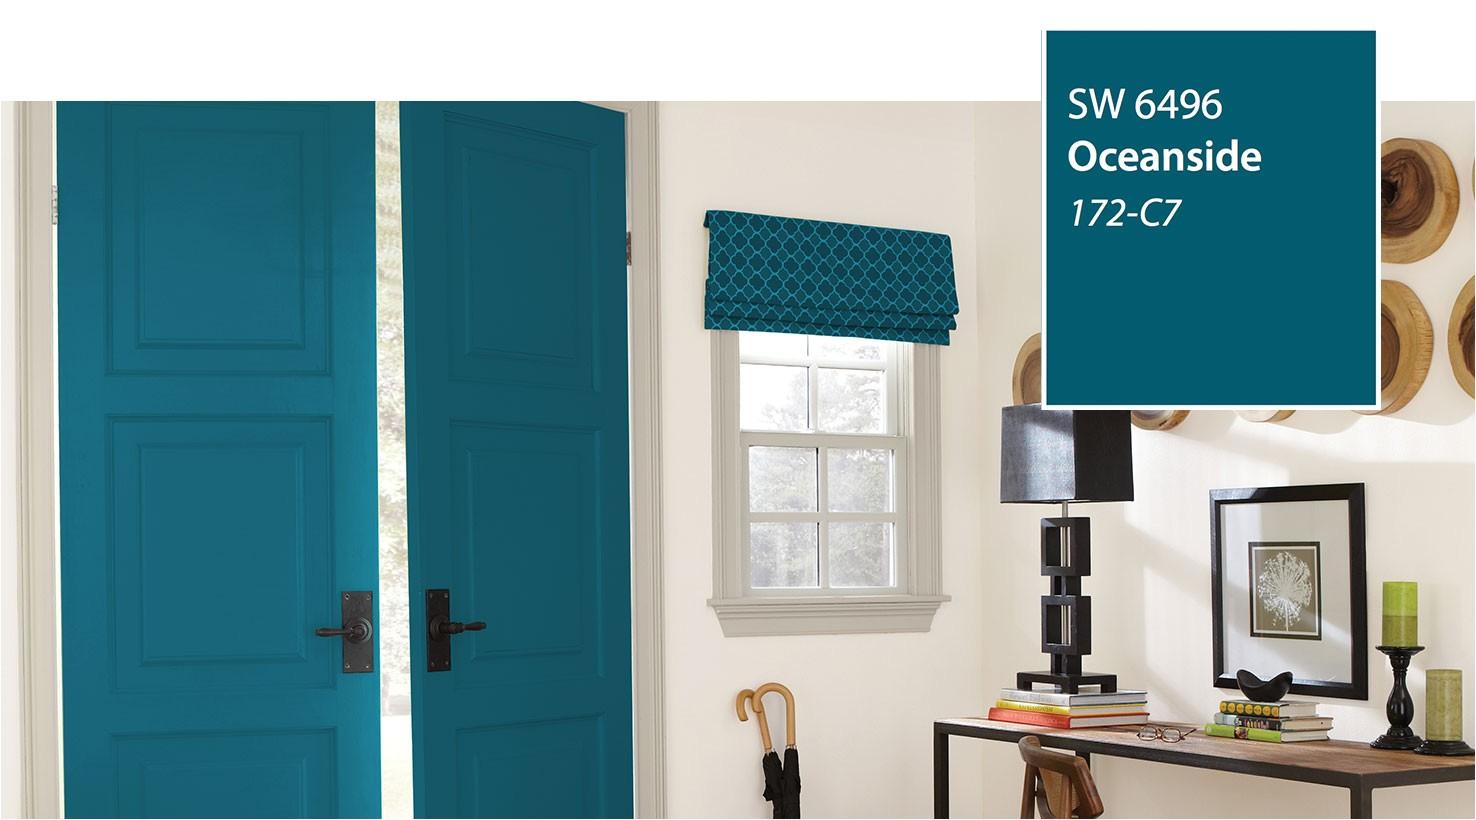 Sherwin Williams Worn Turquoise Introducing the 2018 Color Of the Year Oceanside Sw 6496